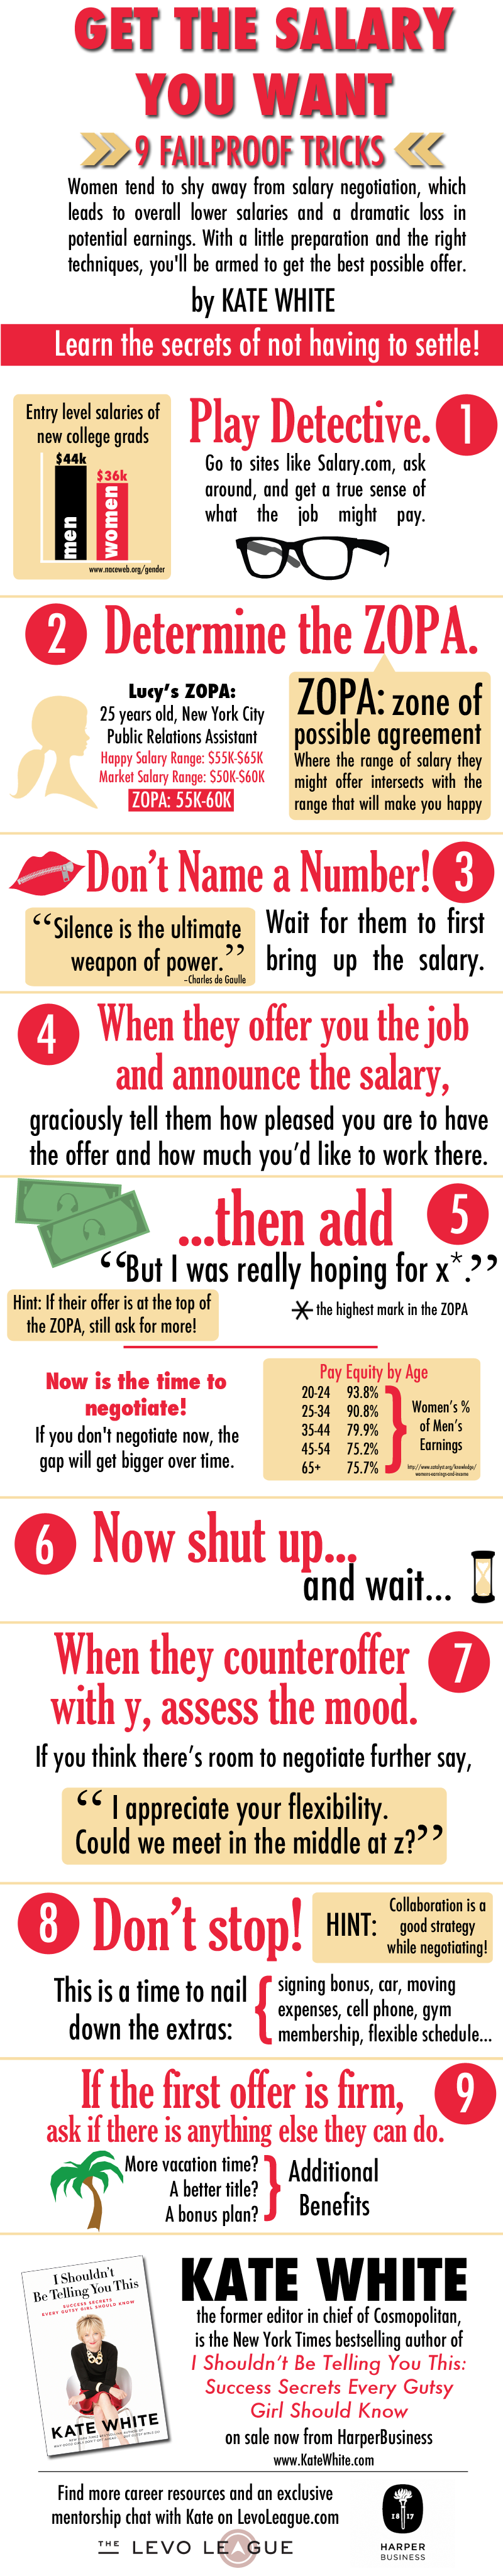 Get the Salary You Want – What is Salary Advice